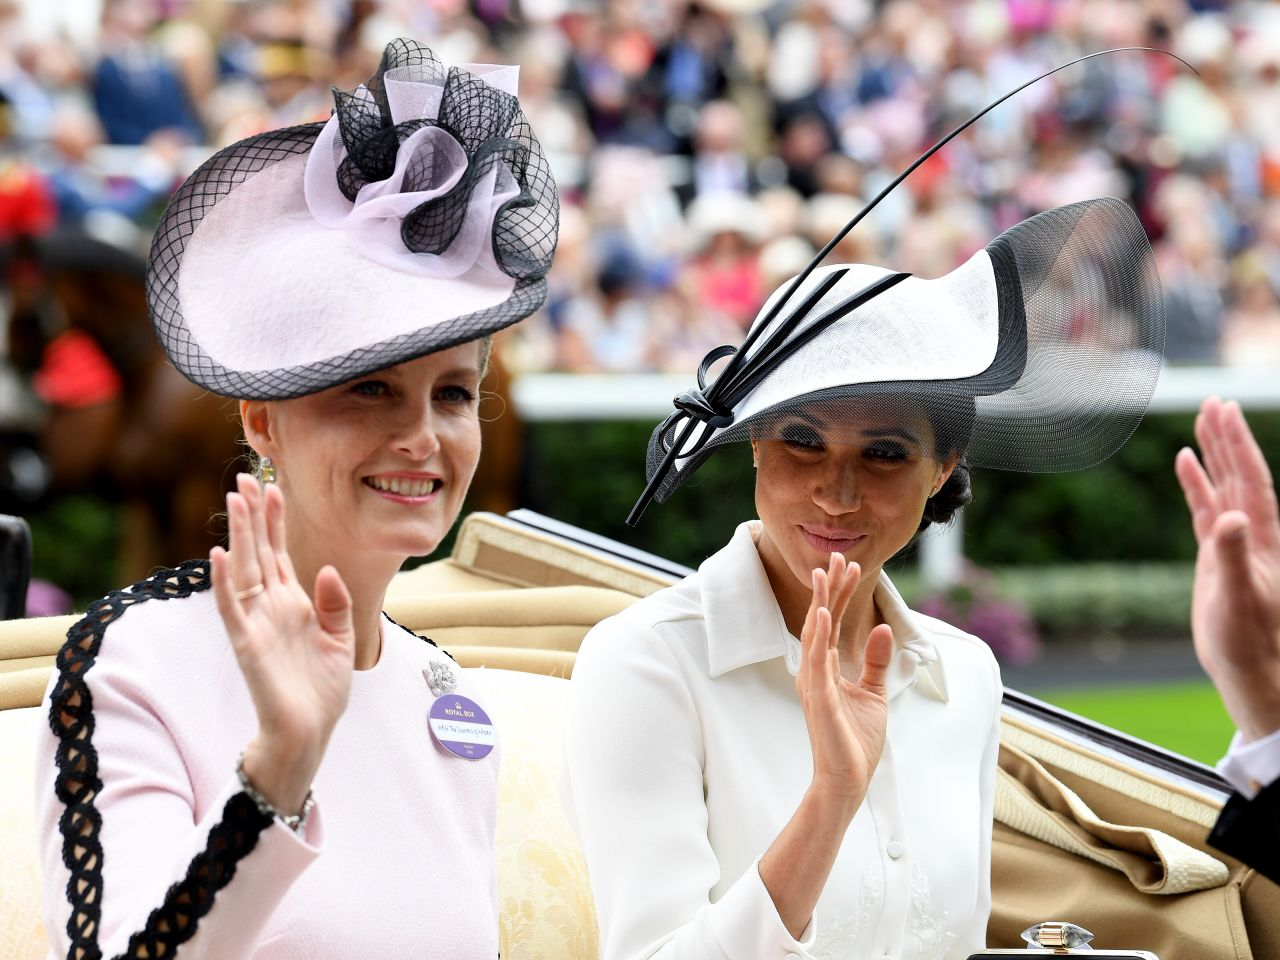 Meghan Markle Day One Of Royal Ascot In Ascot 06 19 2018